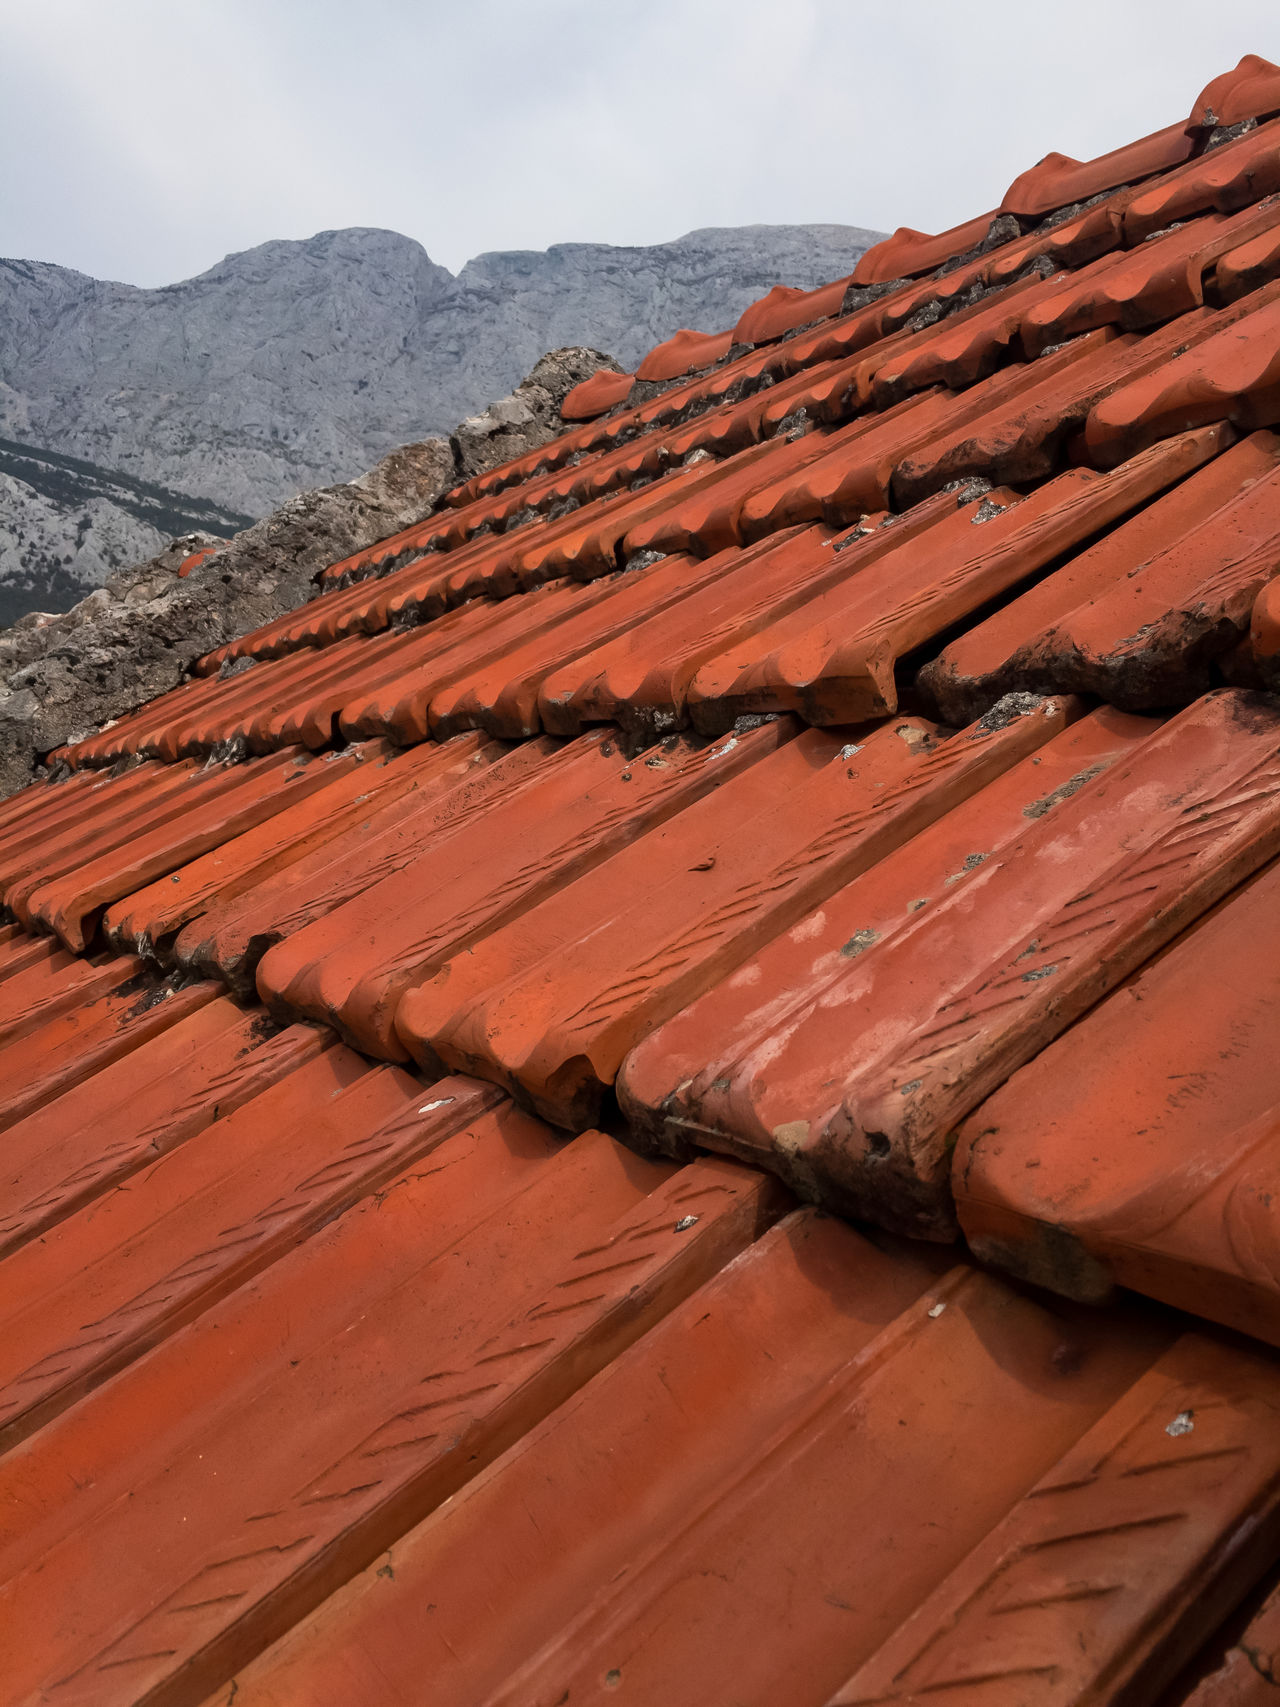 Old red roof tiles with mountain at background Architecture Construction Cover Exterior House Mediterranean  Mountain No People Nobody Old Outdoors Pattern Red Roof Roofing Rooftop Row Texture Tile Tiled Tiles Top Traditional